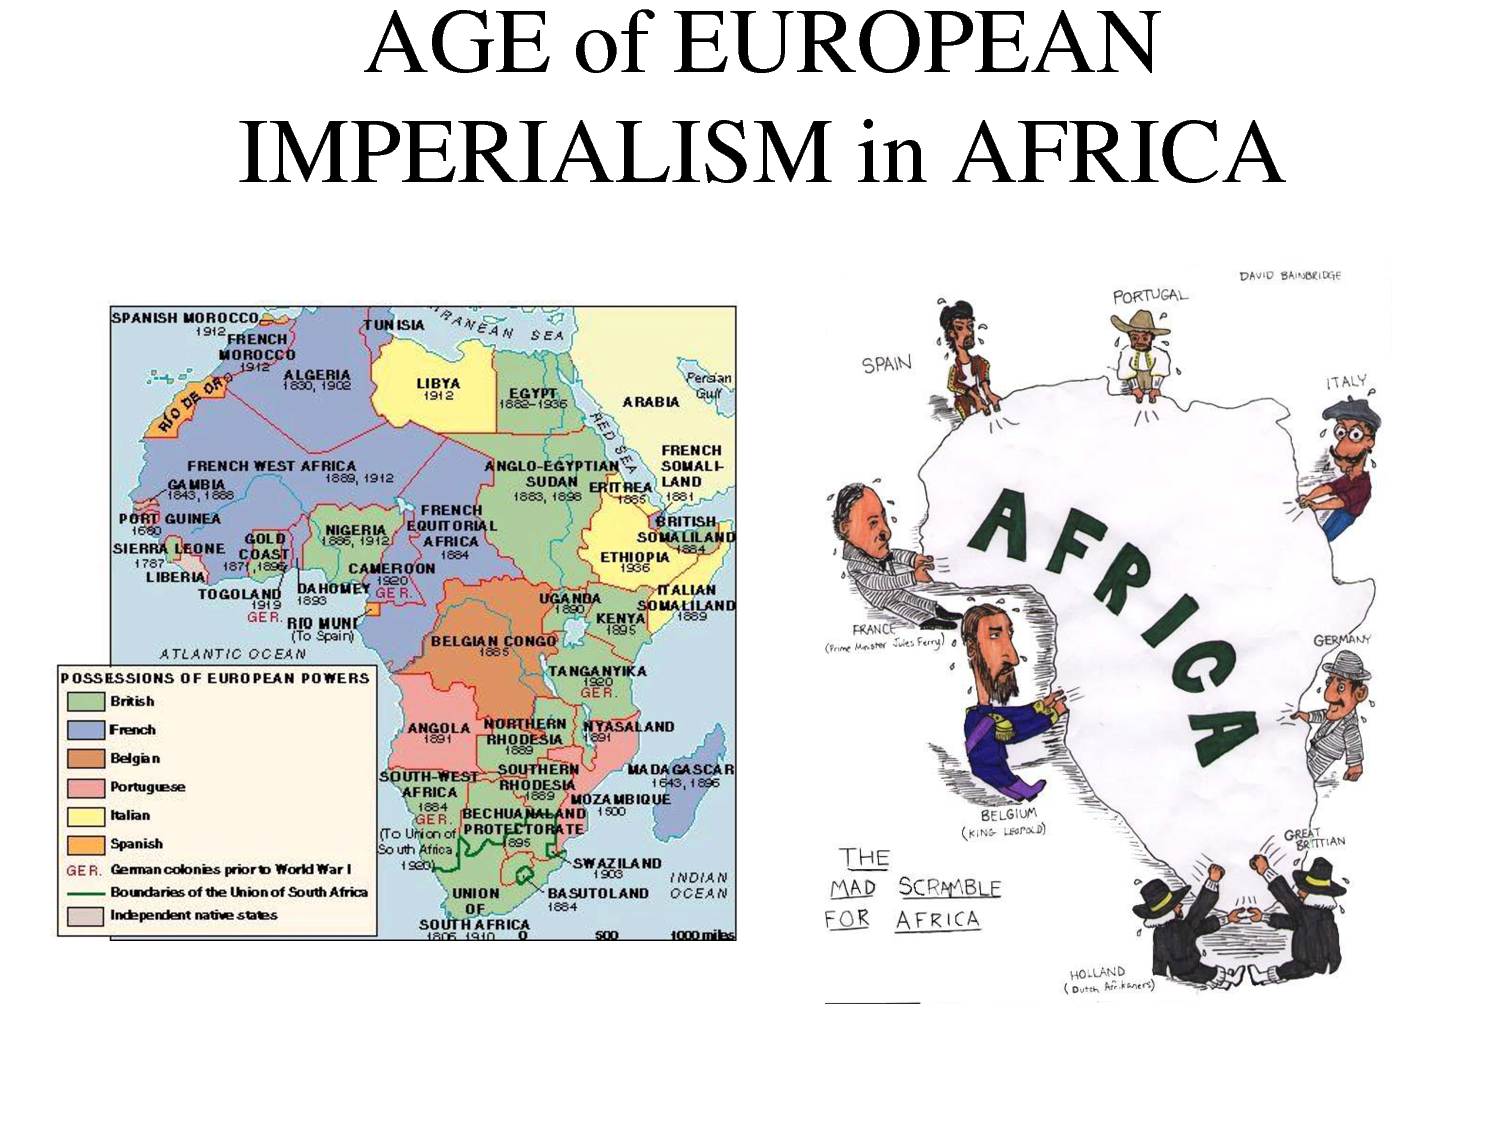 motivations behind british imperialism in africa Imperialism is when a superior nation or region takes over an inferior nation or region to dominate the economic, political, and cultural life  what were some motives for imperialism in nigeria british desired more power in competition with others  in africa there were about 1,000 ethnic groups.